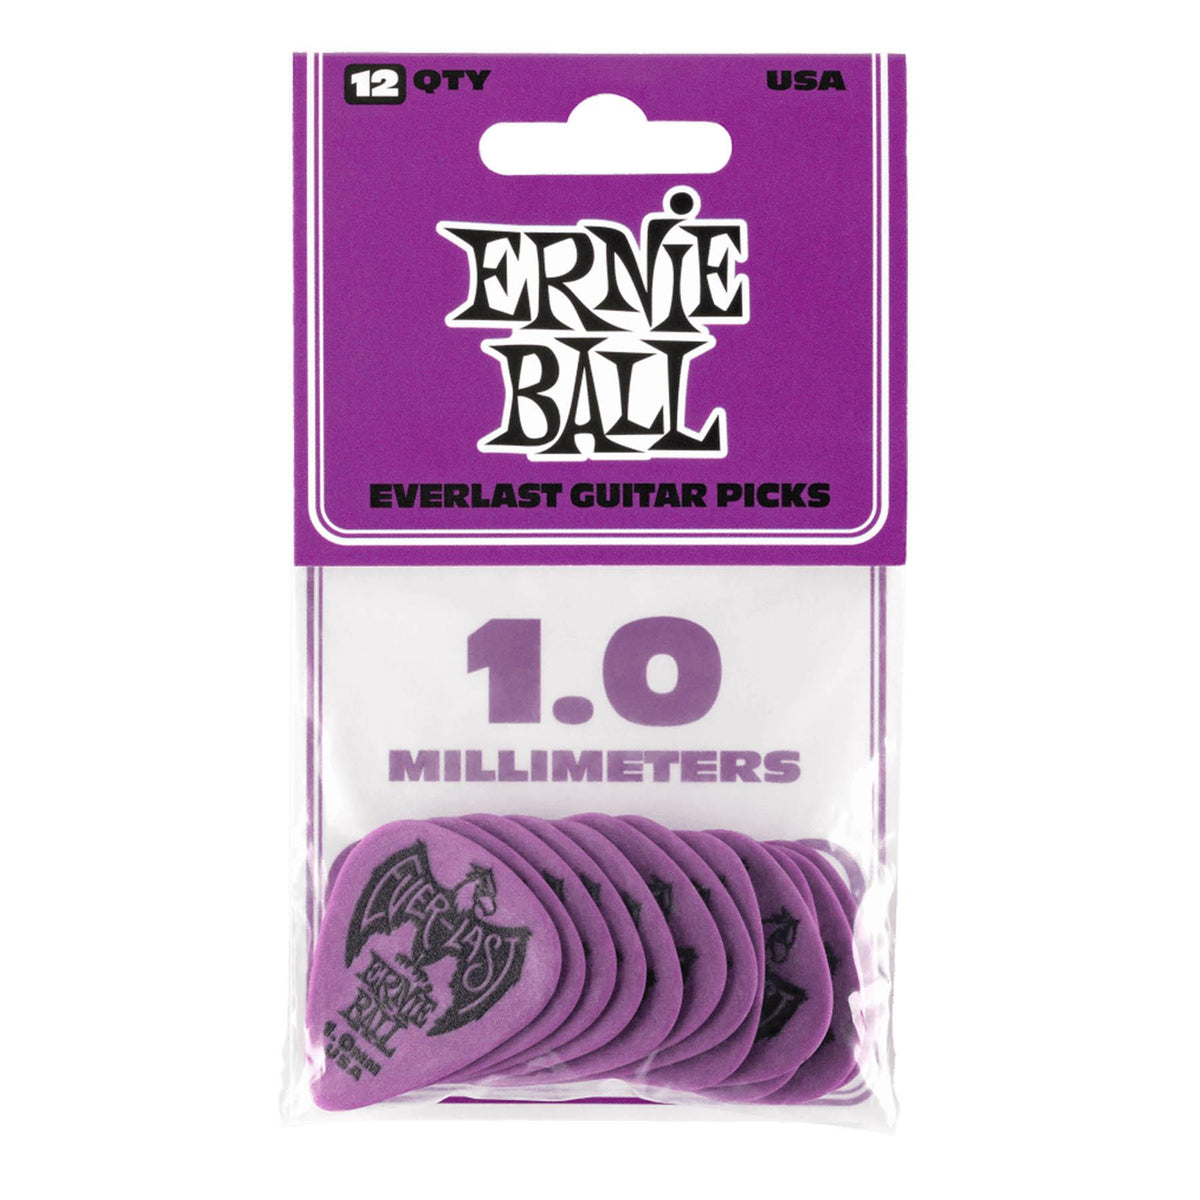 Ernie Ball P09193 Purple 1.0mm Everlast Guitar Picks - 12-pack